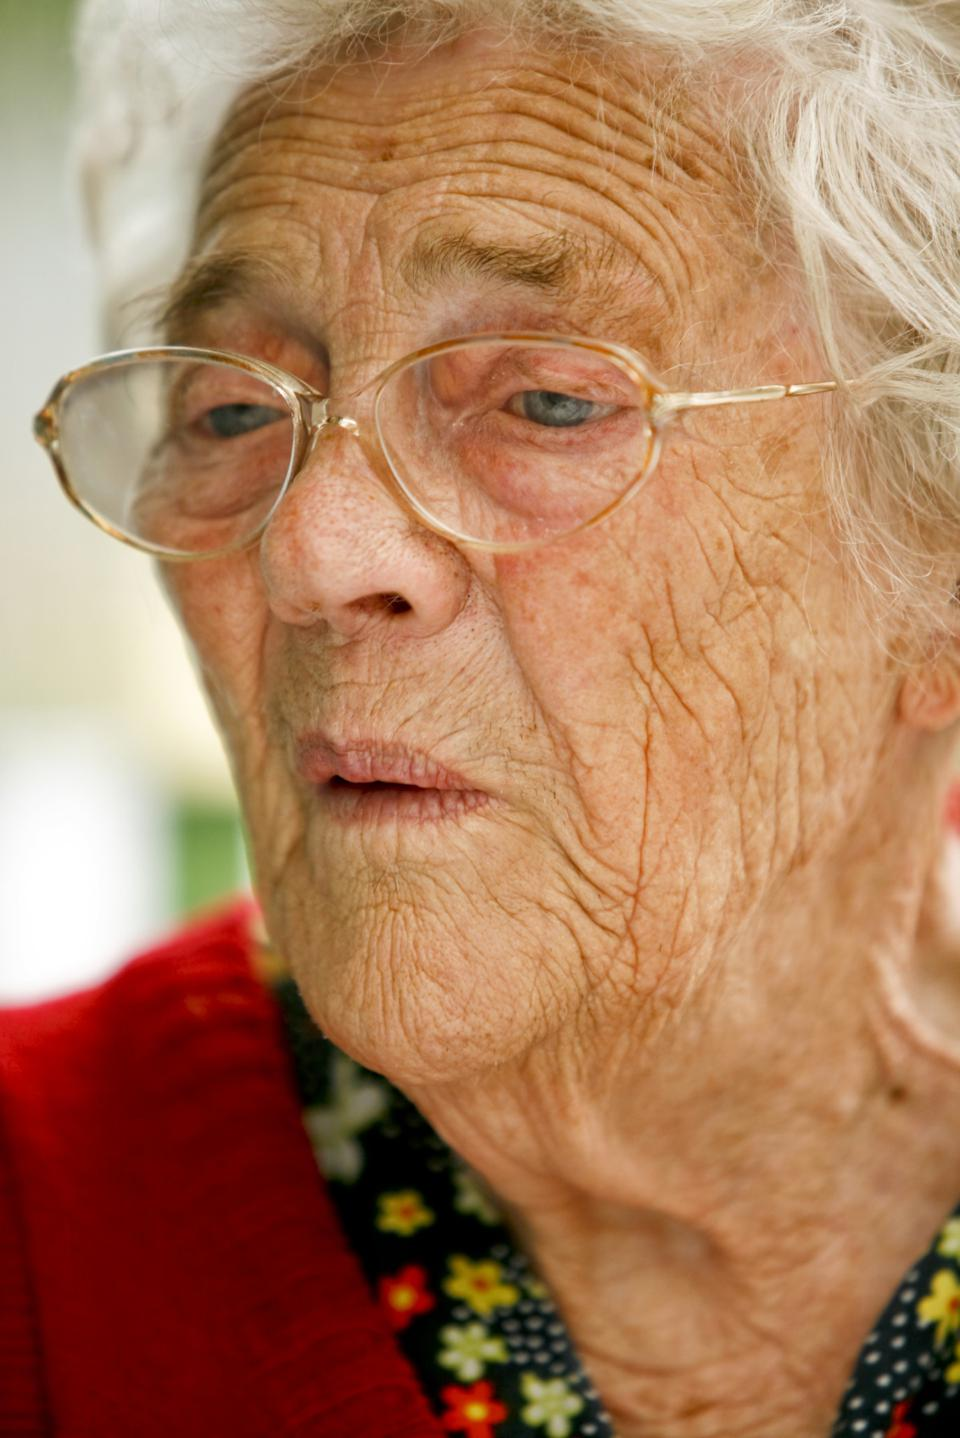 Elders usually start to slip cognitively in a subtle way